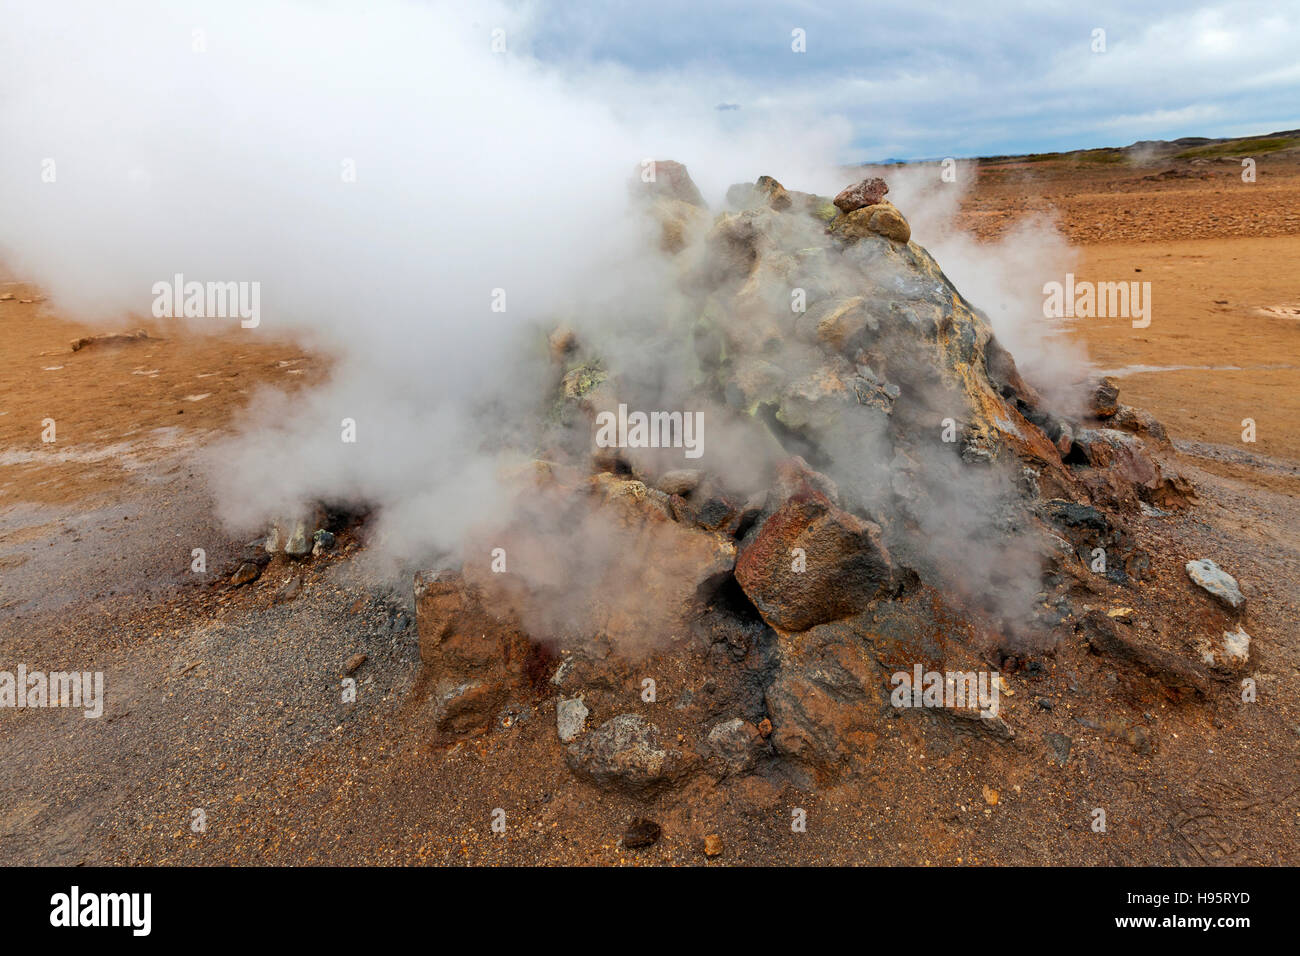 A view of the Hverir Geothermal Field by Mt. Namafjall next to Lake Myvatn, Iceland. Stock Photo